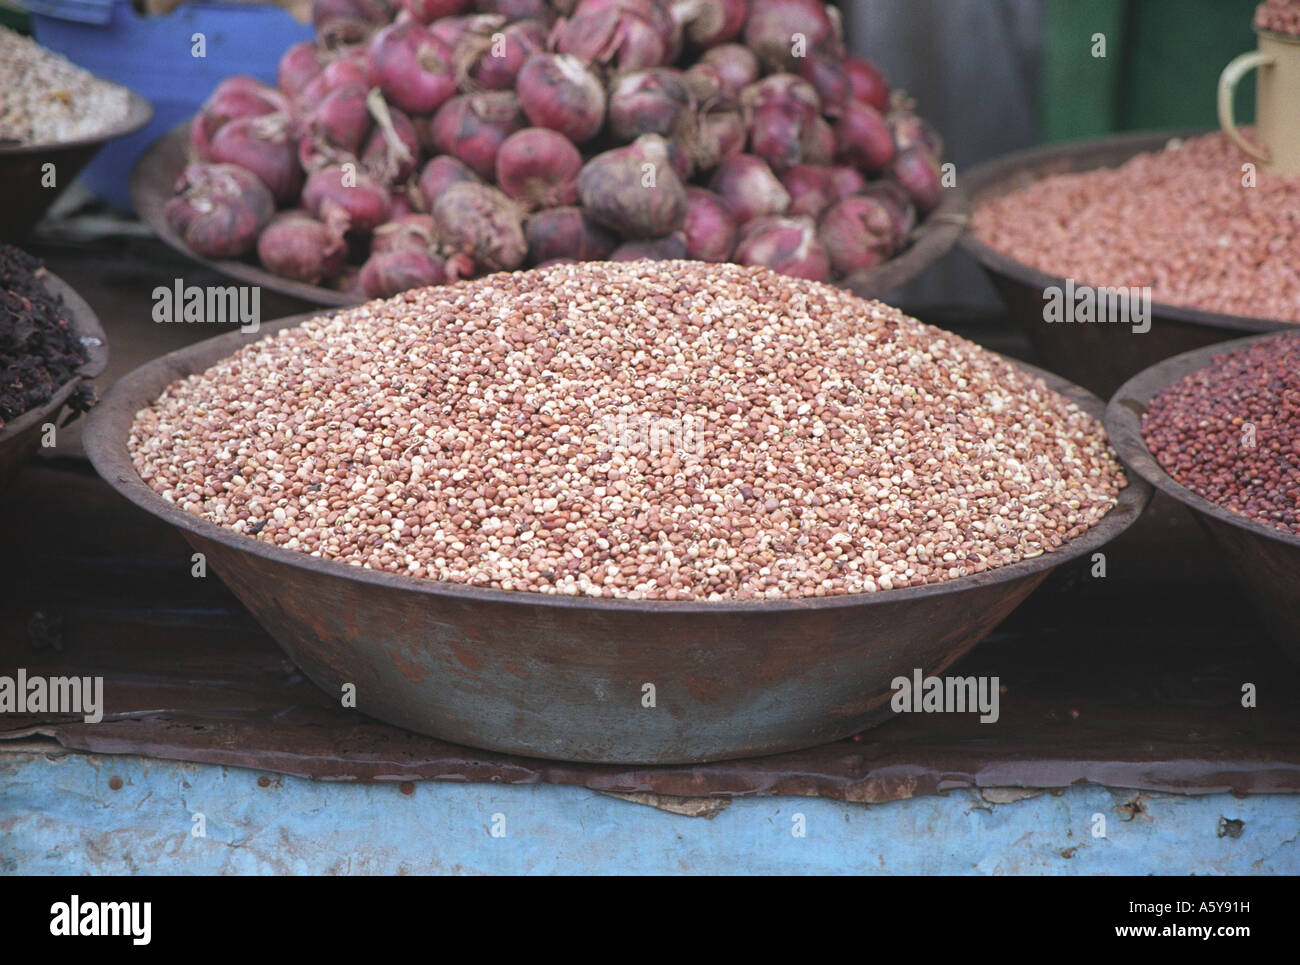 Spices, beans and onions displayed at Juba market South Sudan - Stock Image